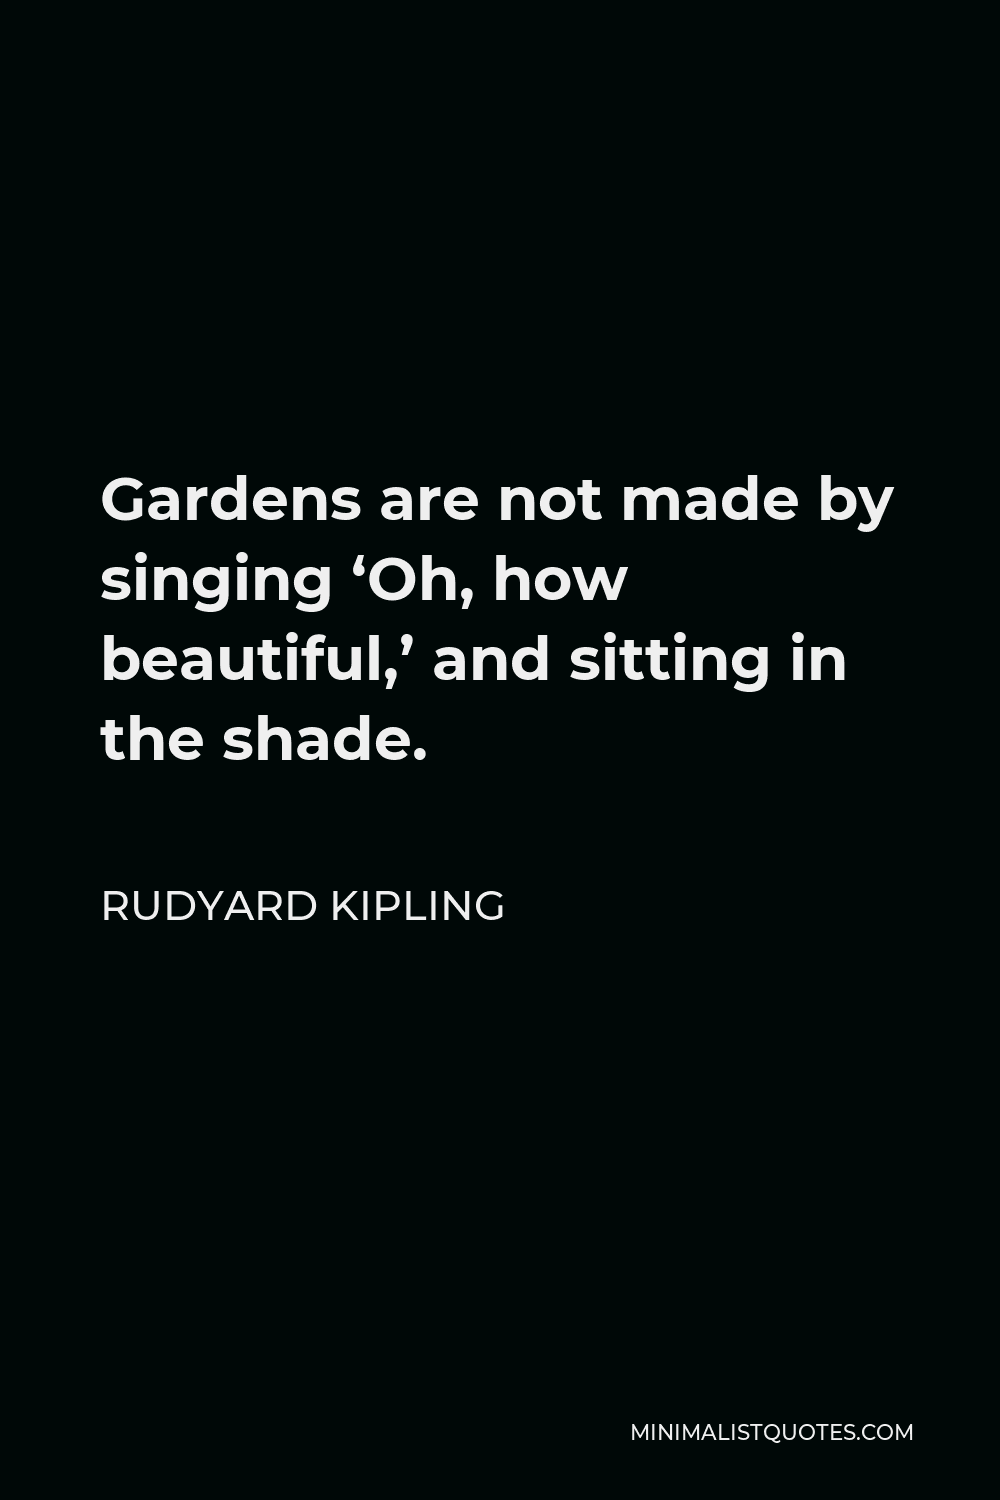 Rudyard Kipling Quote - Gardens are not made by singing 'Oh, how beautiful,' and sitting in the shade.